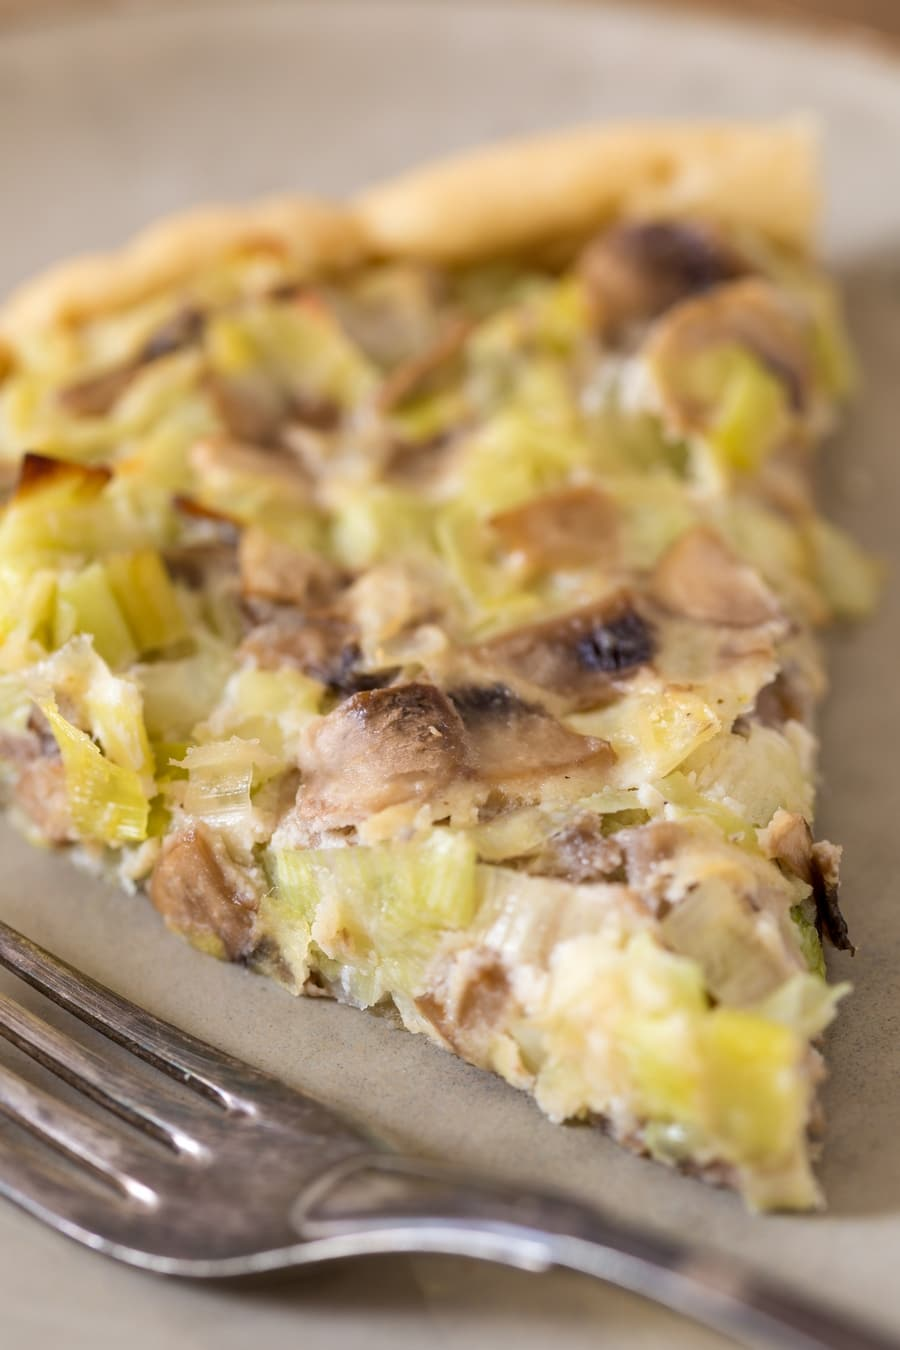 Closeup of mushroom ricotta pie with leeks.